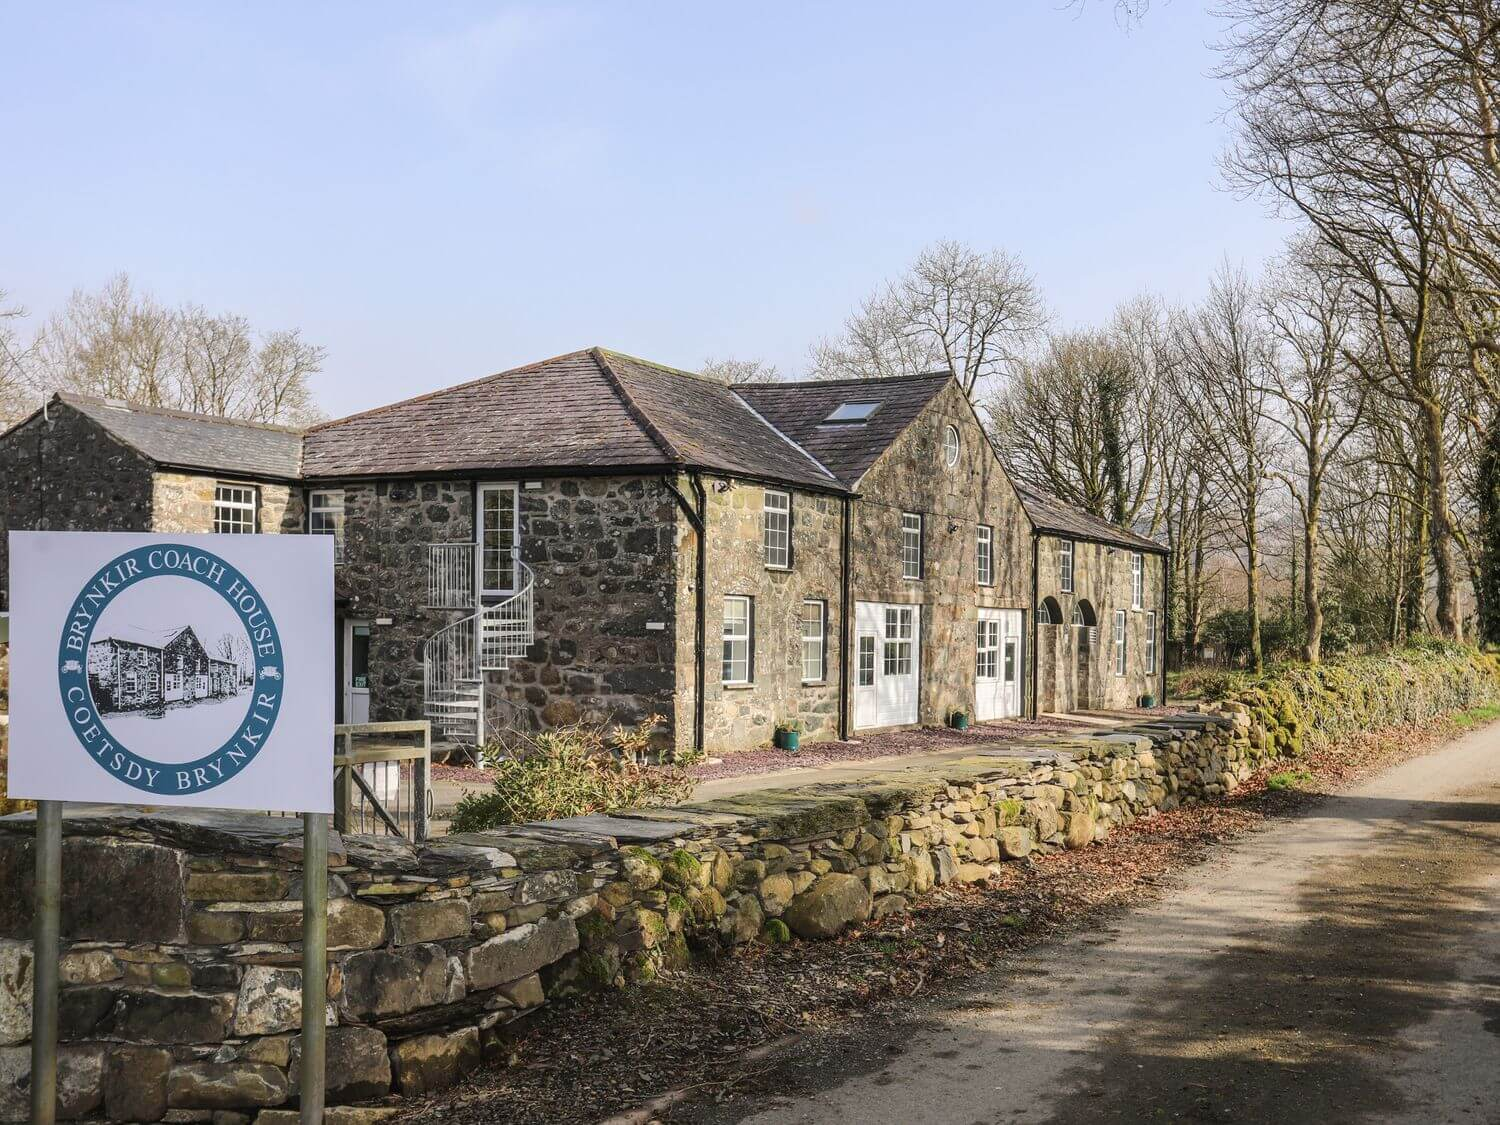 Brynkir Coach House | Wales Holiday Cottages | Menai Holiday Cottages